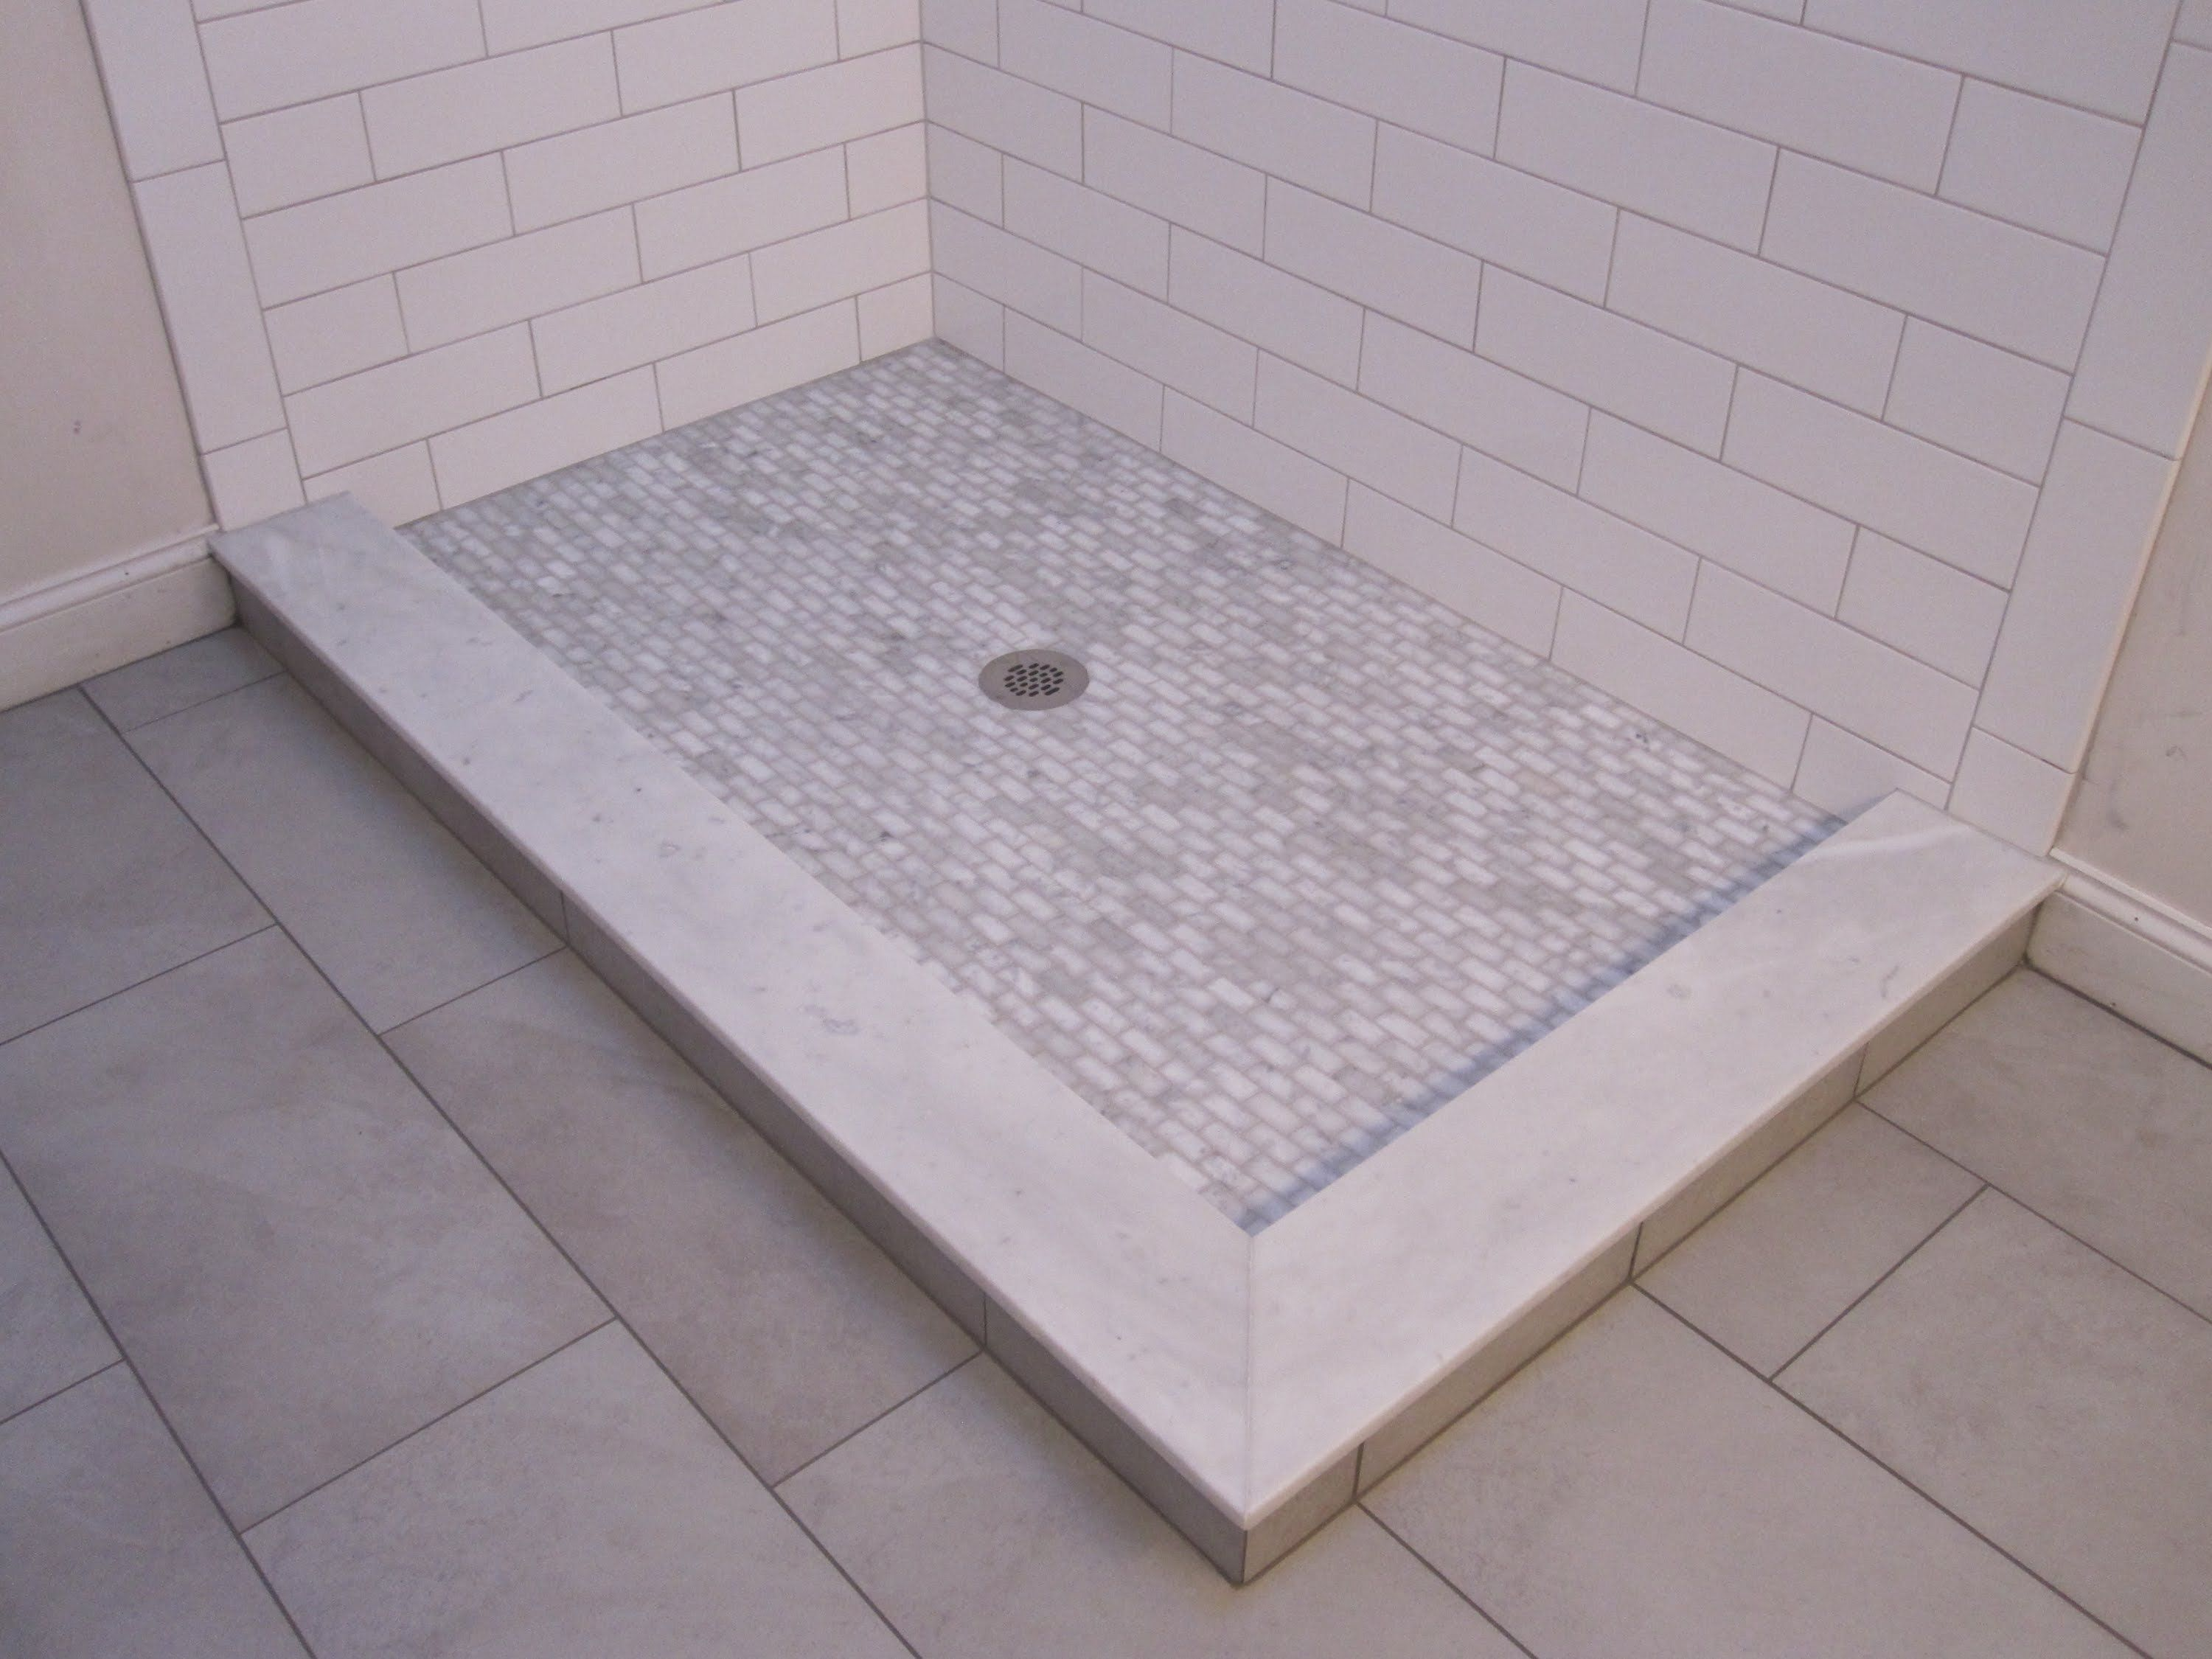 Ceramic tile shower stall ideas tiled shower stalls ideas jpg - Aquatic S New Subway Tile Family Of Tub Showers And Showers Offers Fresh Take On Timeless Classic Design